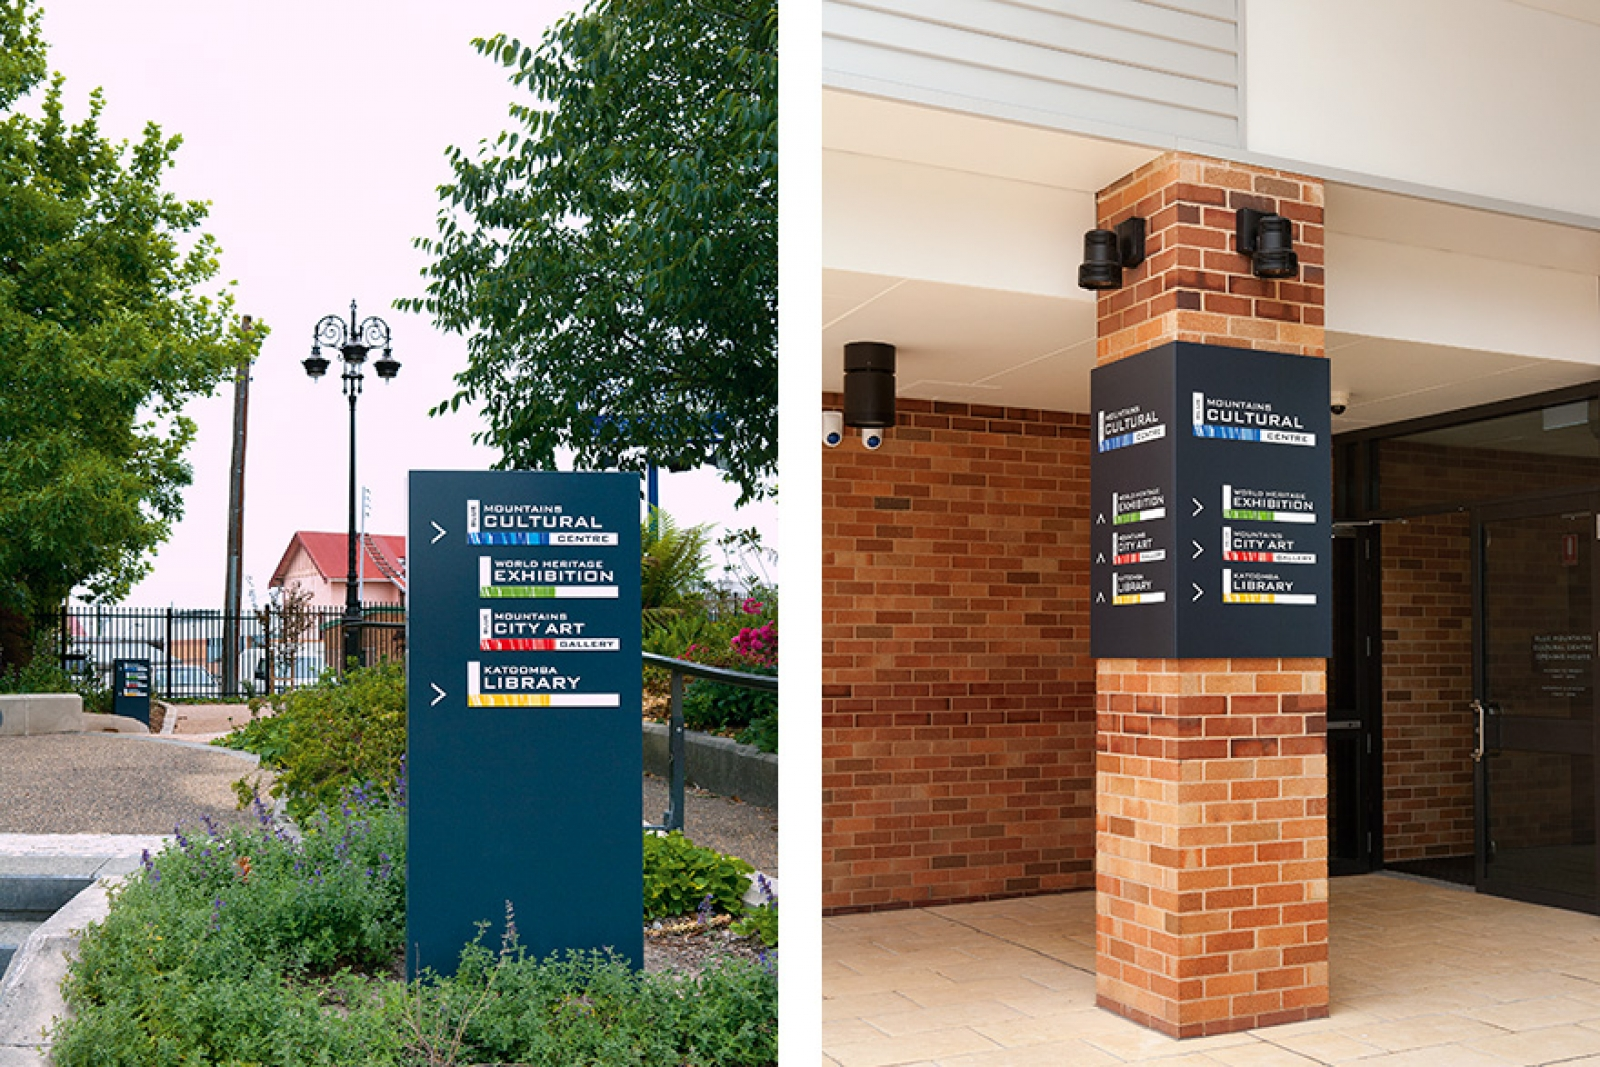 Blue Mountains Cultural Centre Brand and Wayfinding